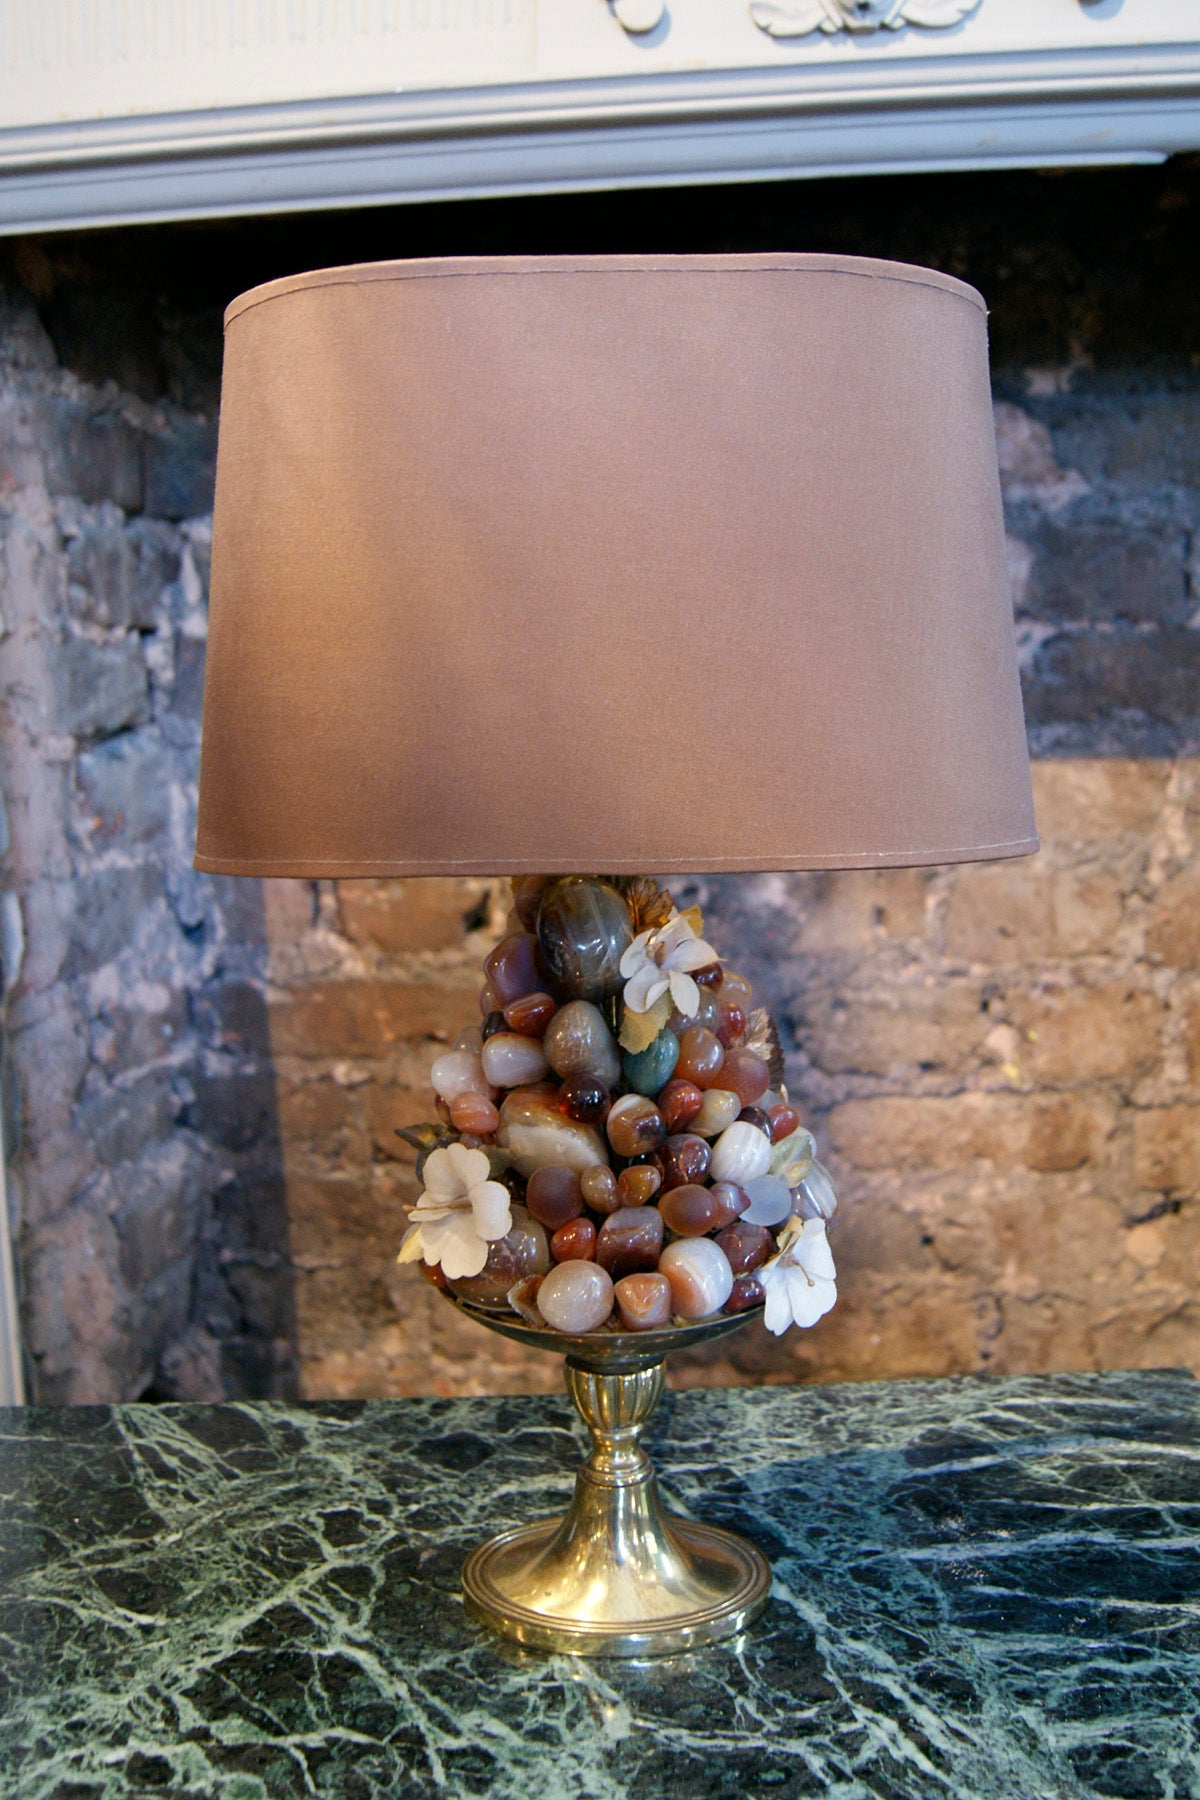 Semi precious stone and Agate Table Lamp circa 1950